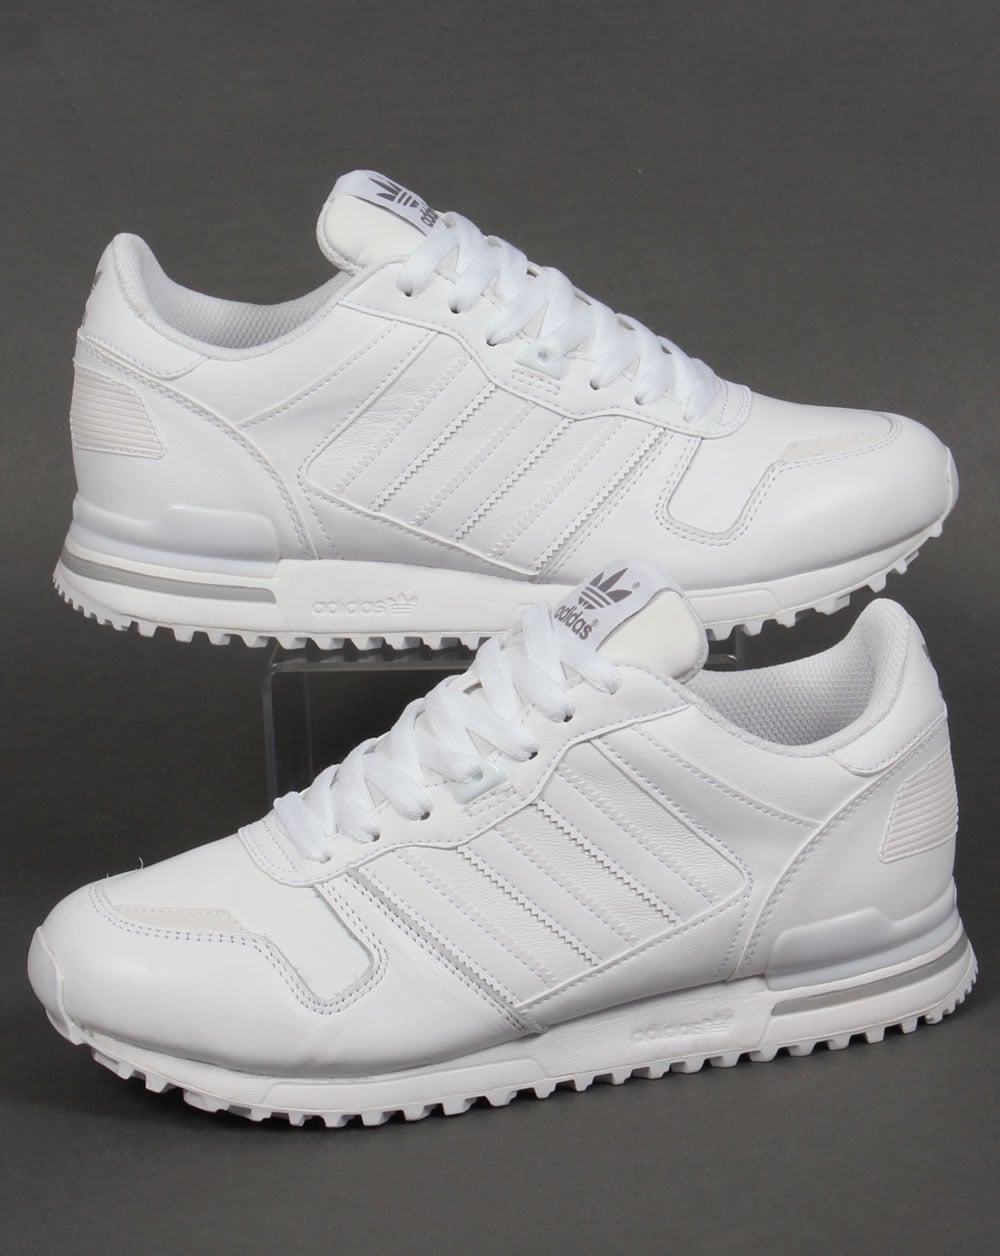 order online official supplier new styles Adidas ZX 700 Leathers Trainers White